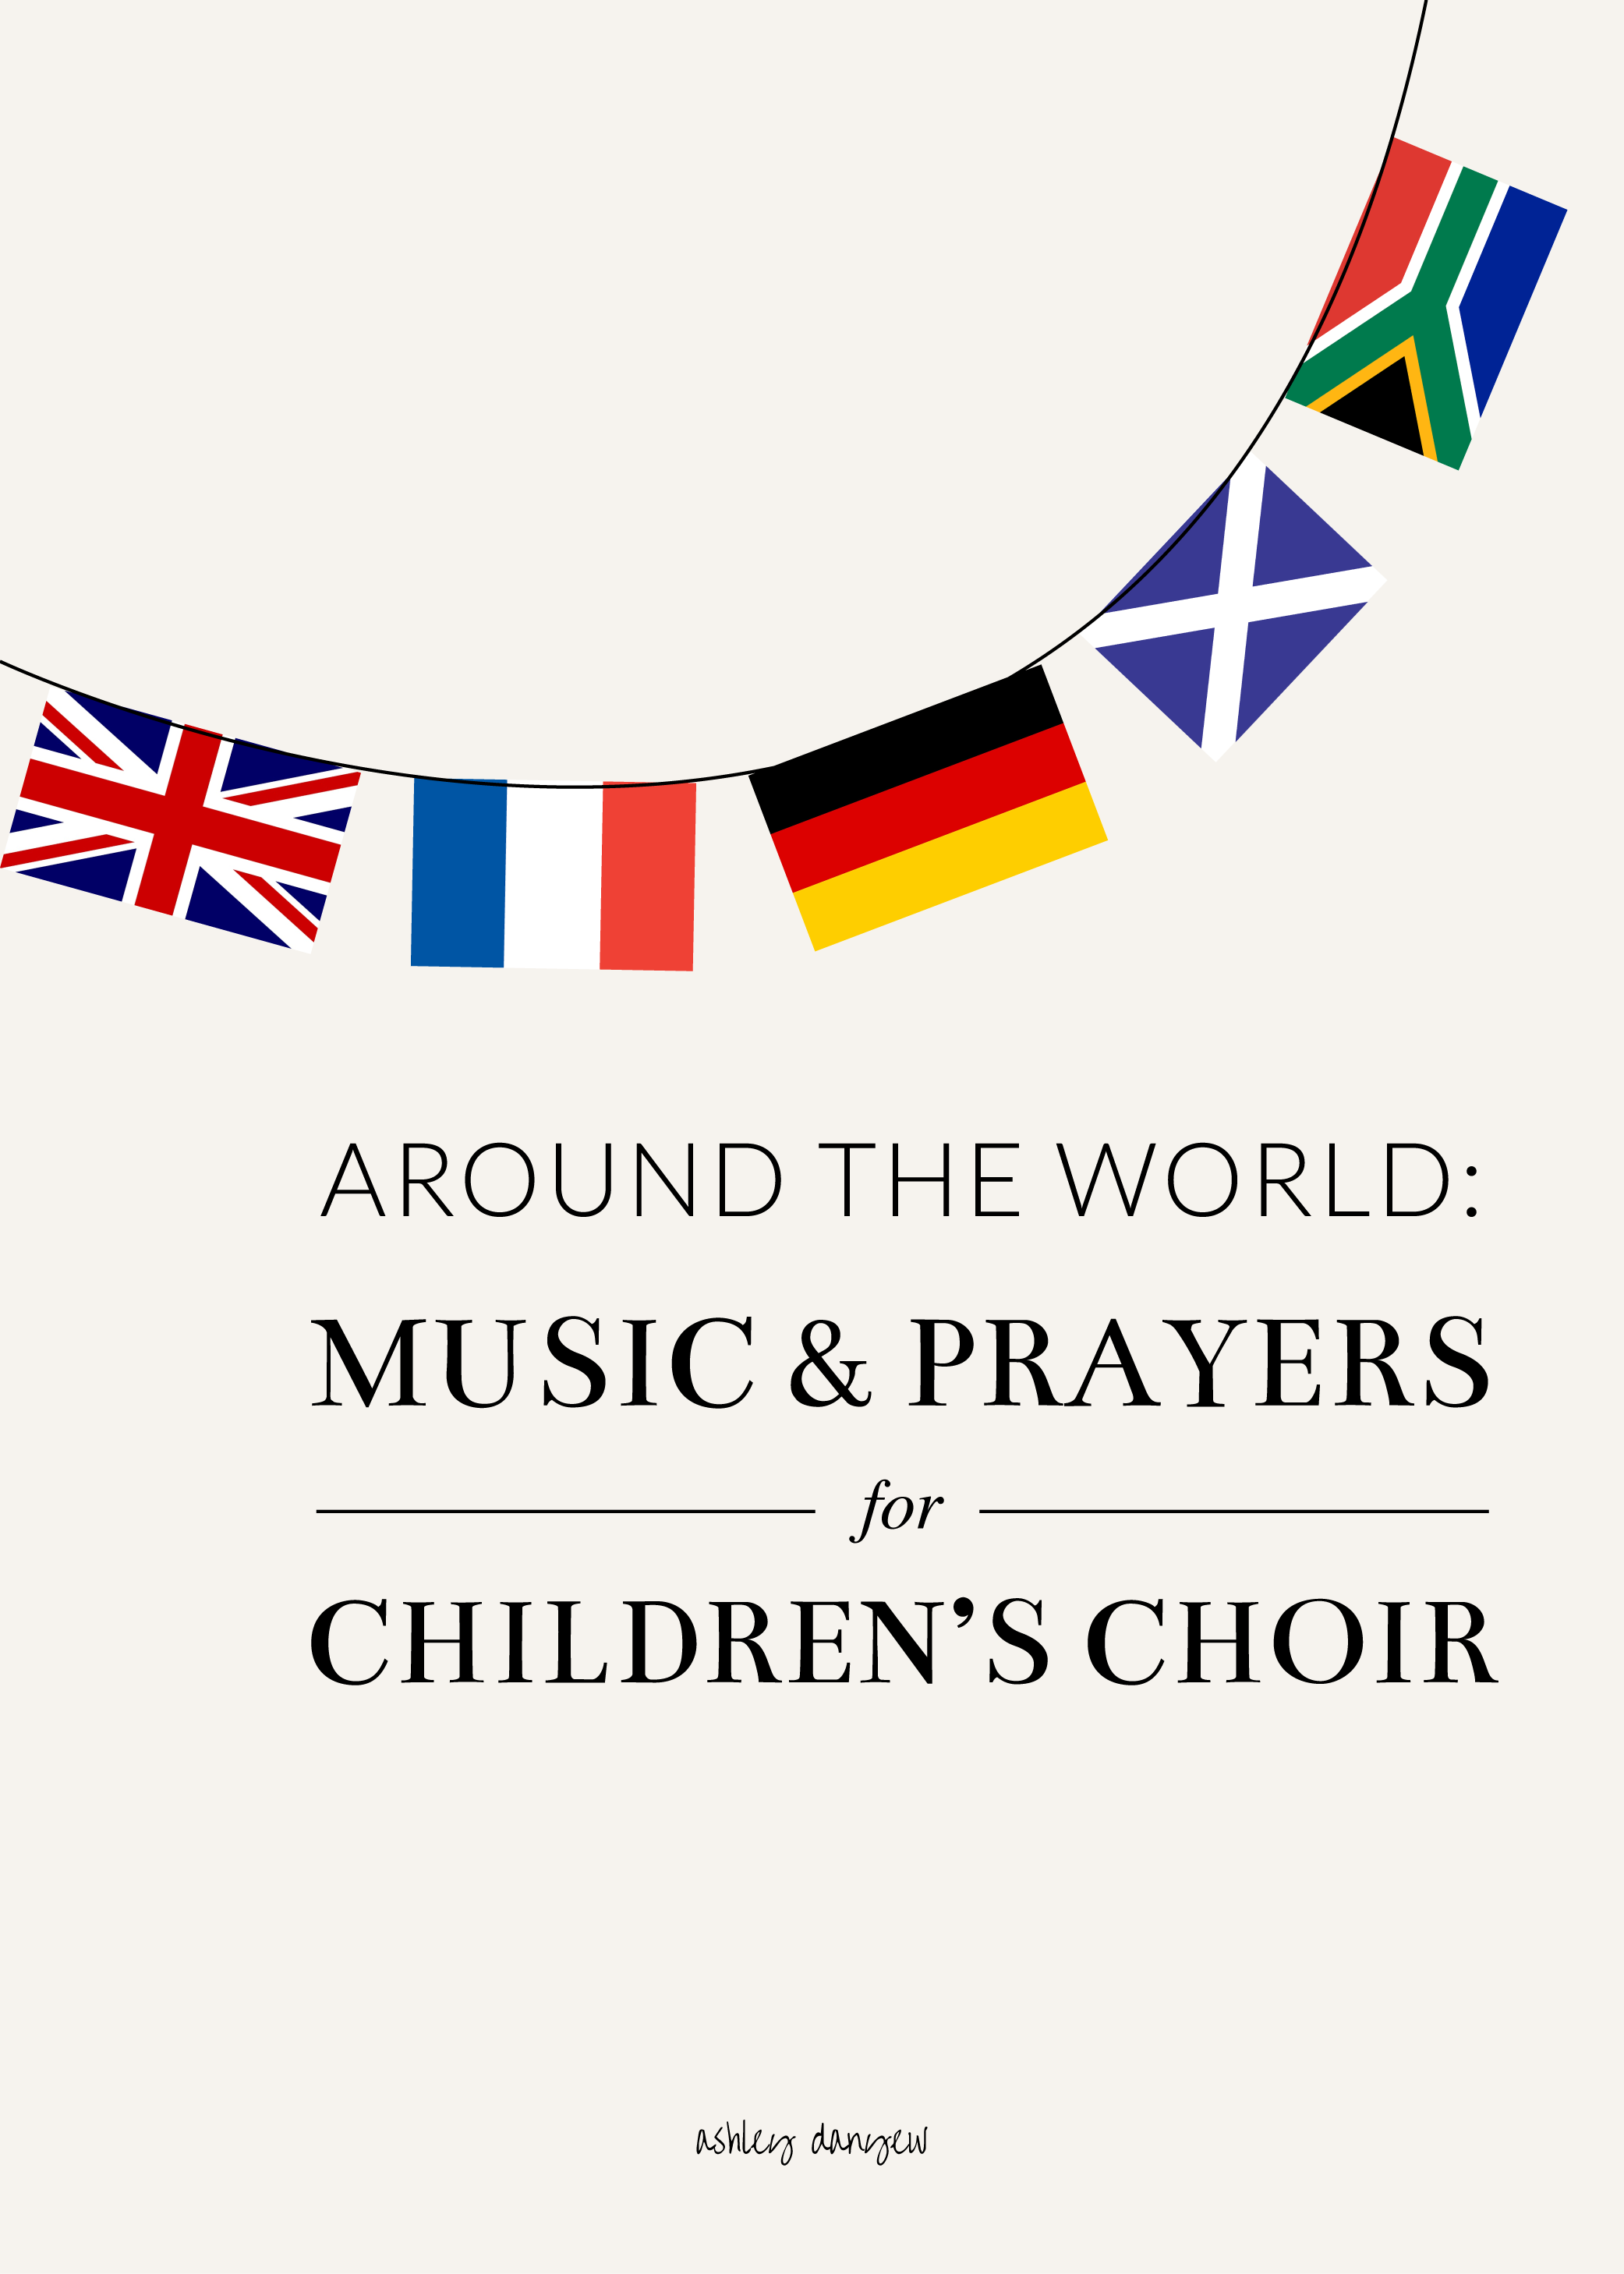 Around-the-World-Music-and-Prayers-for-Childrens-Choir-01.png